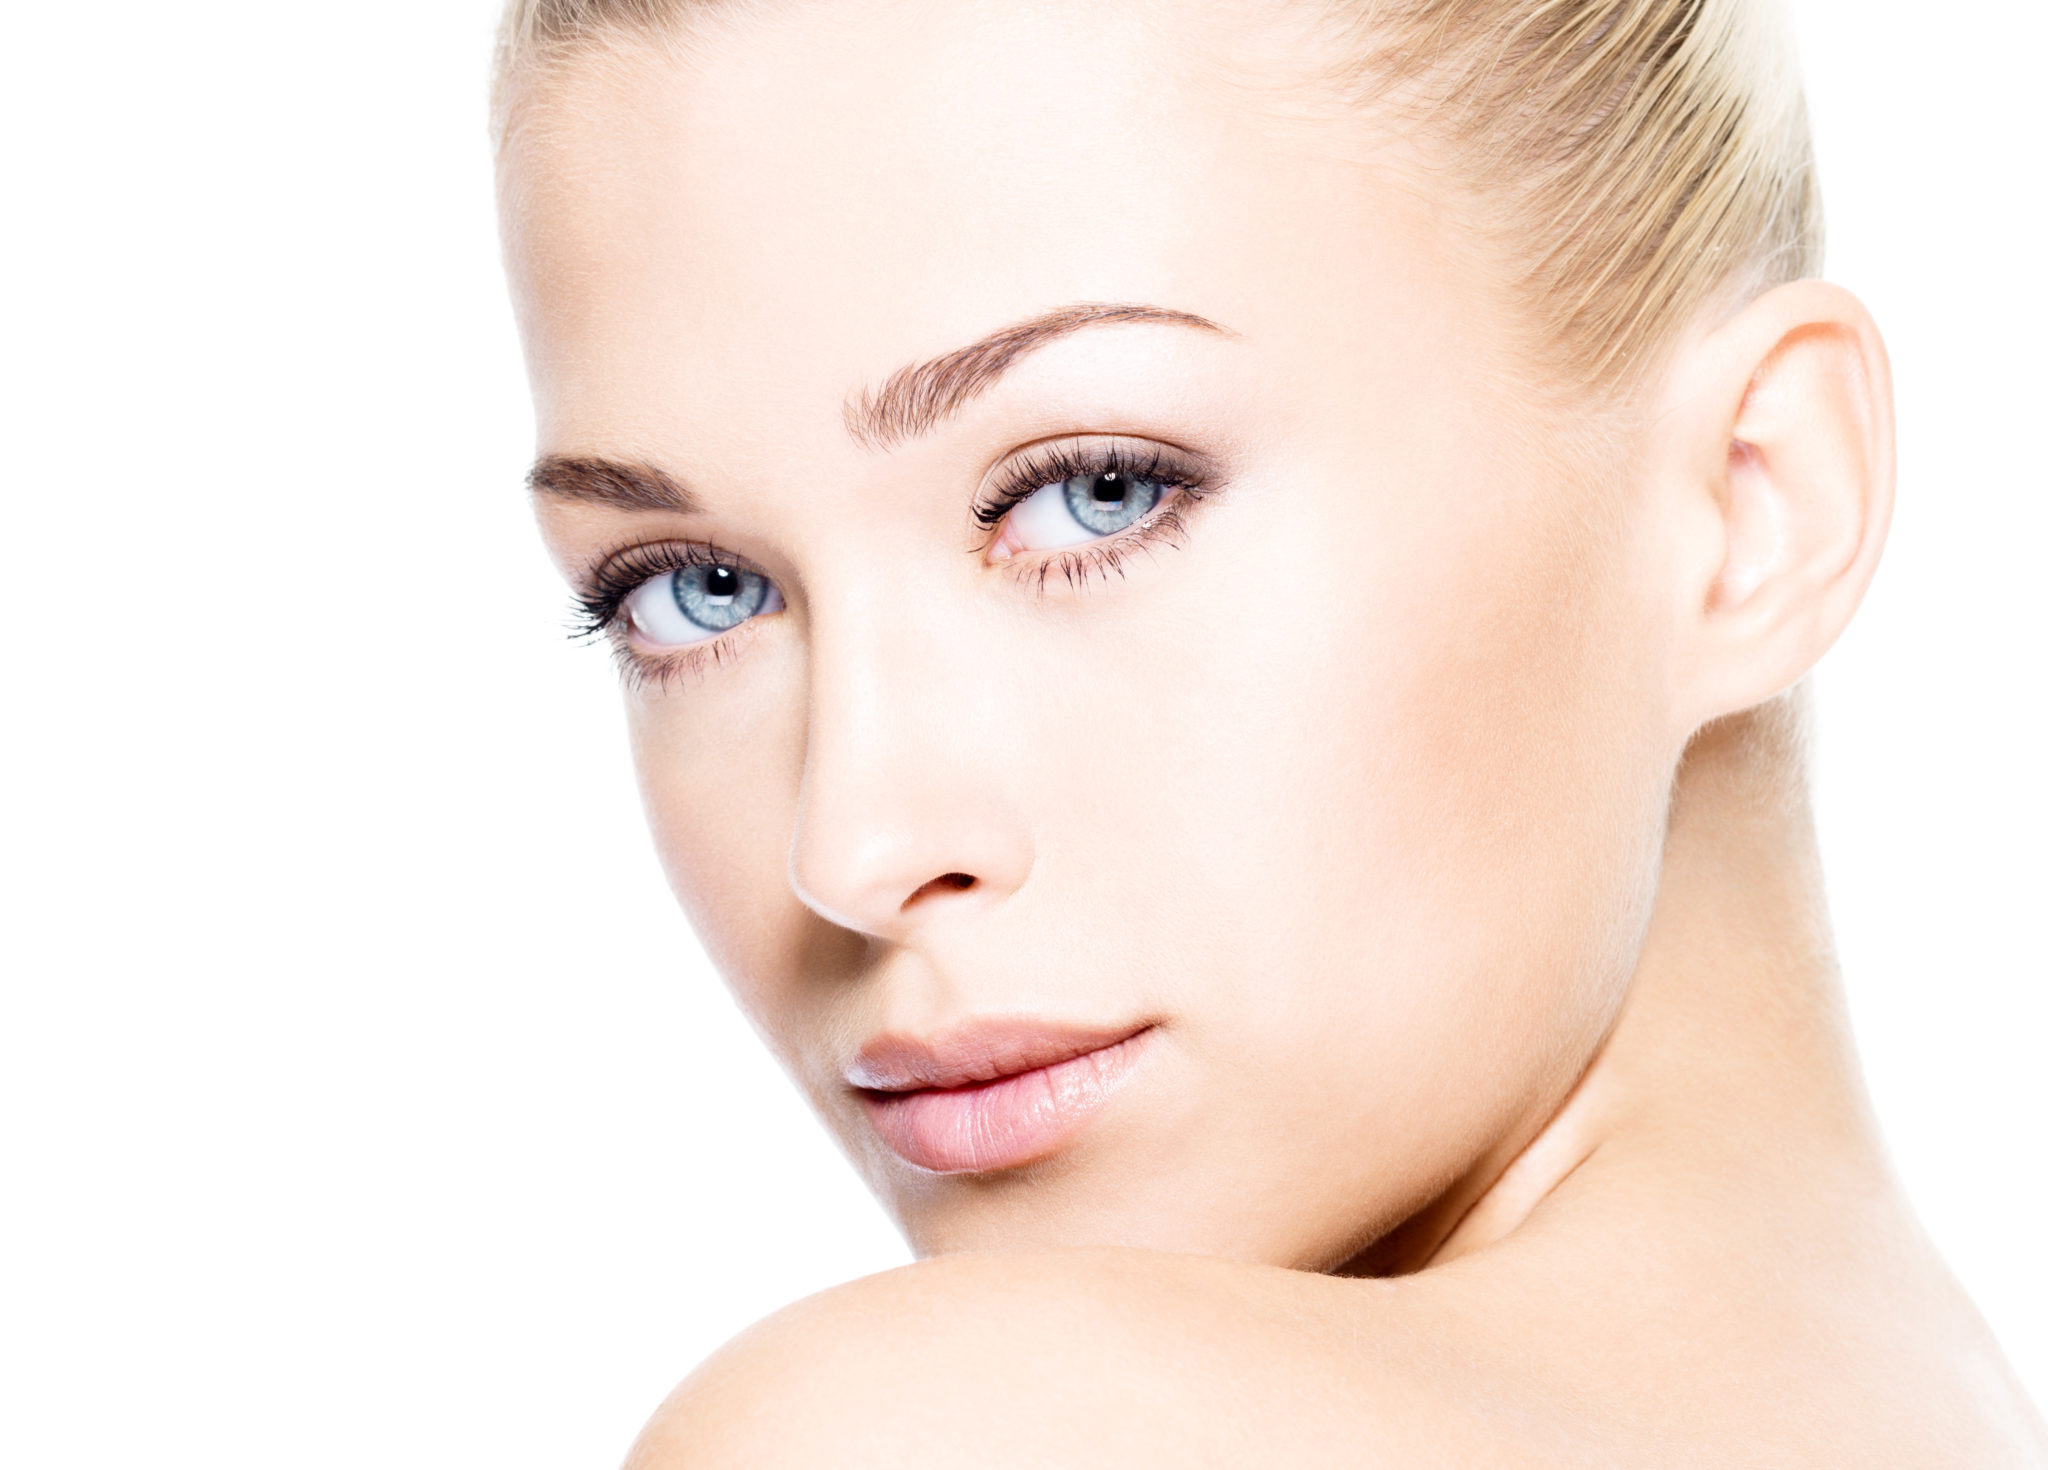 Michael Todd Skin Care Looking For Models Paid Modeling Jobs